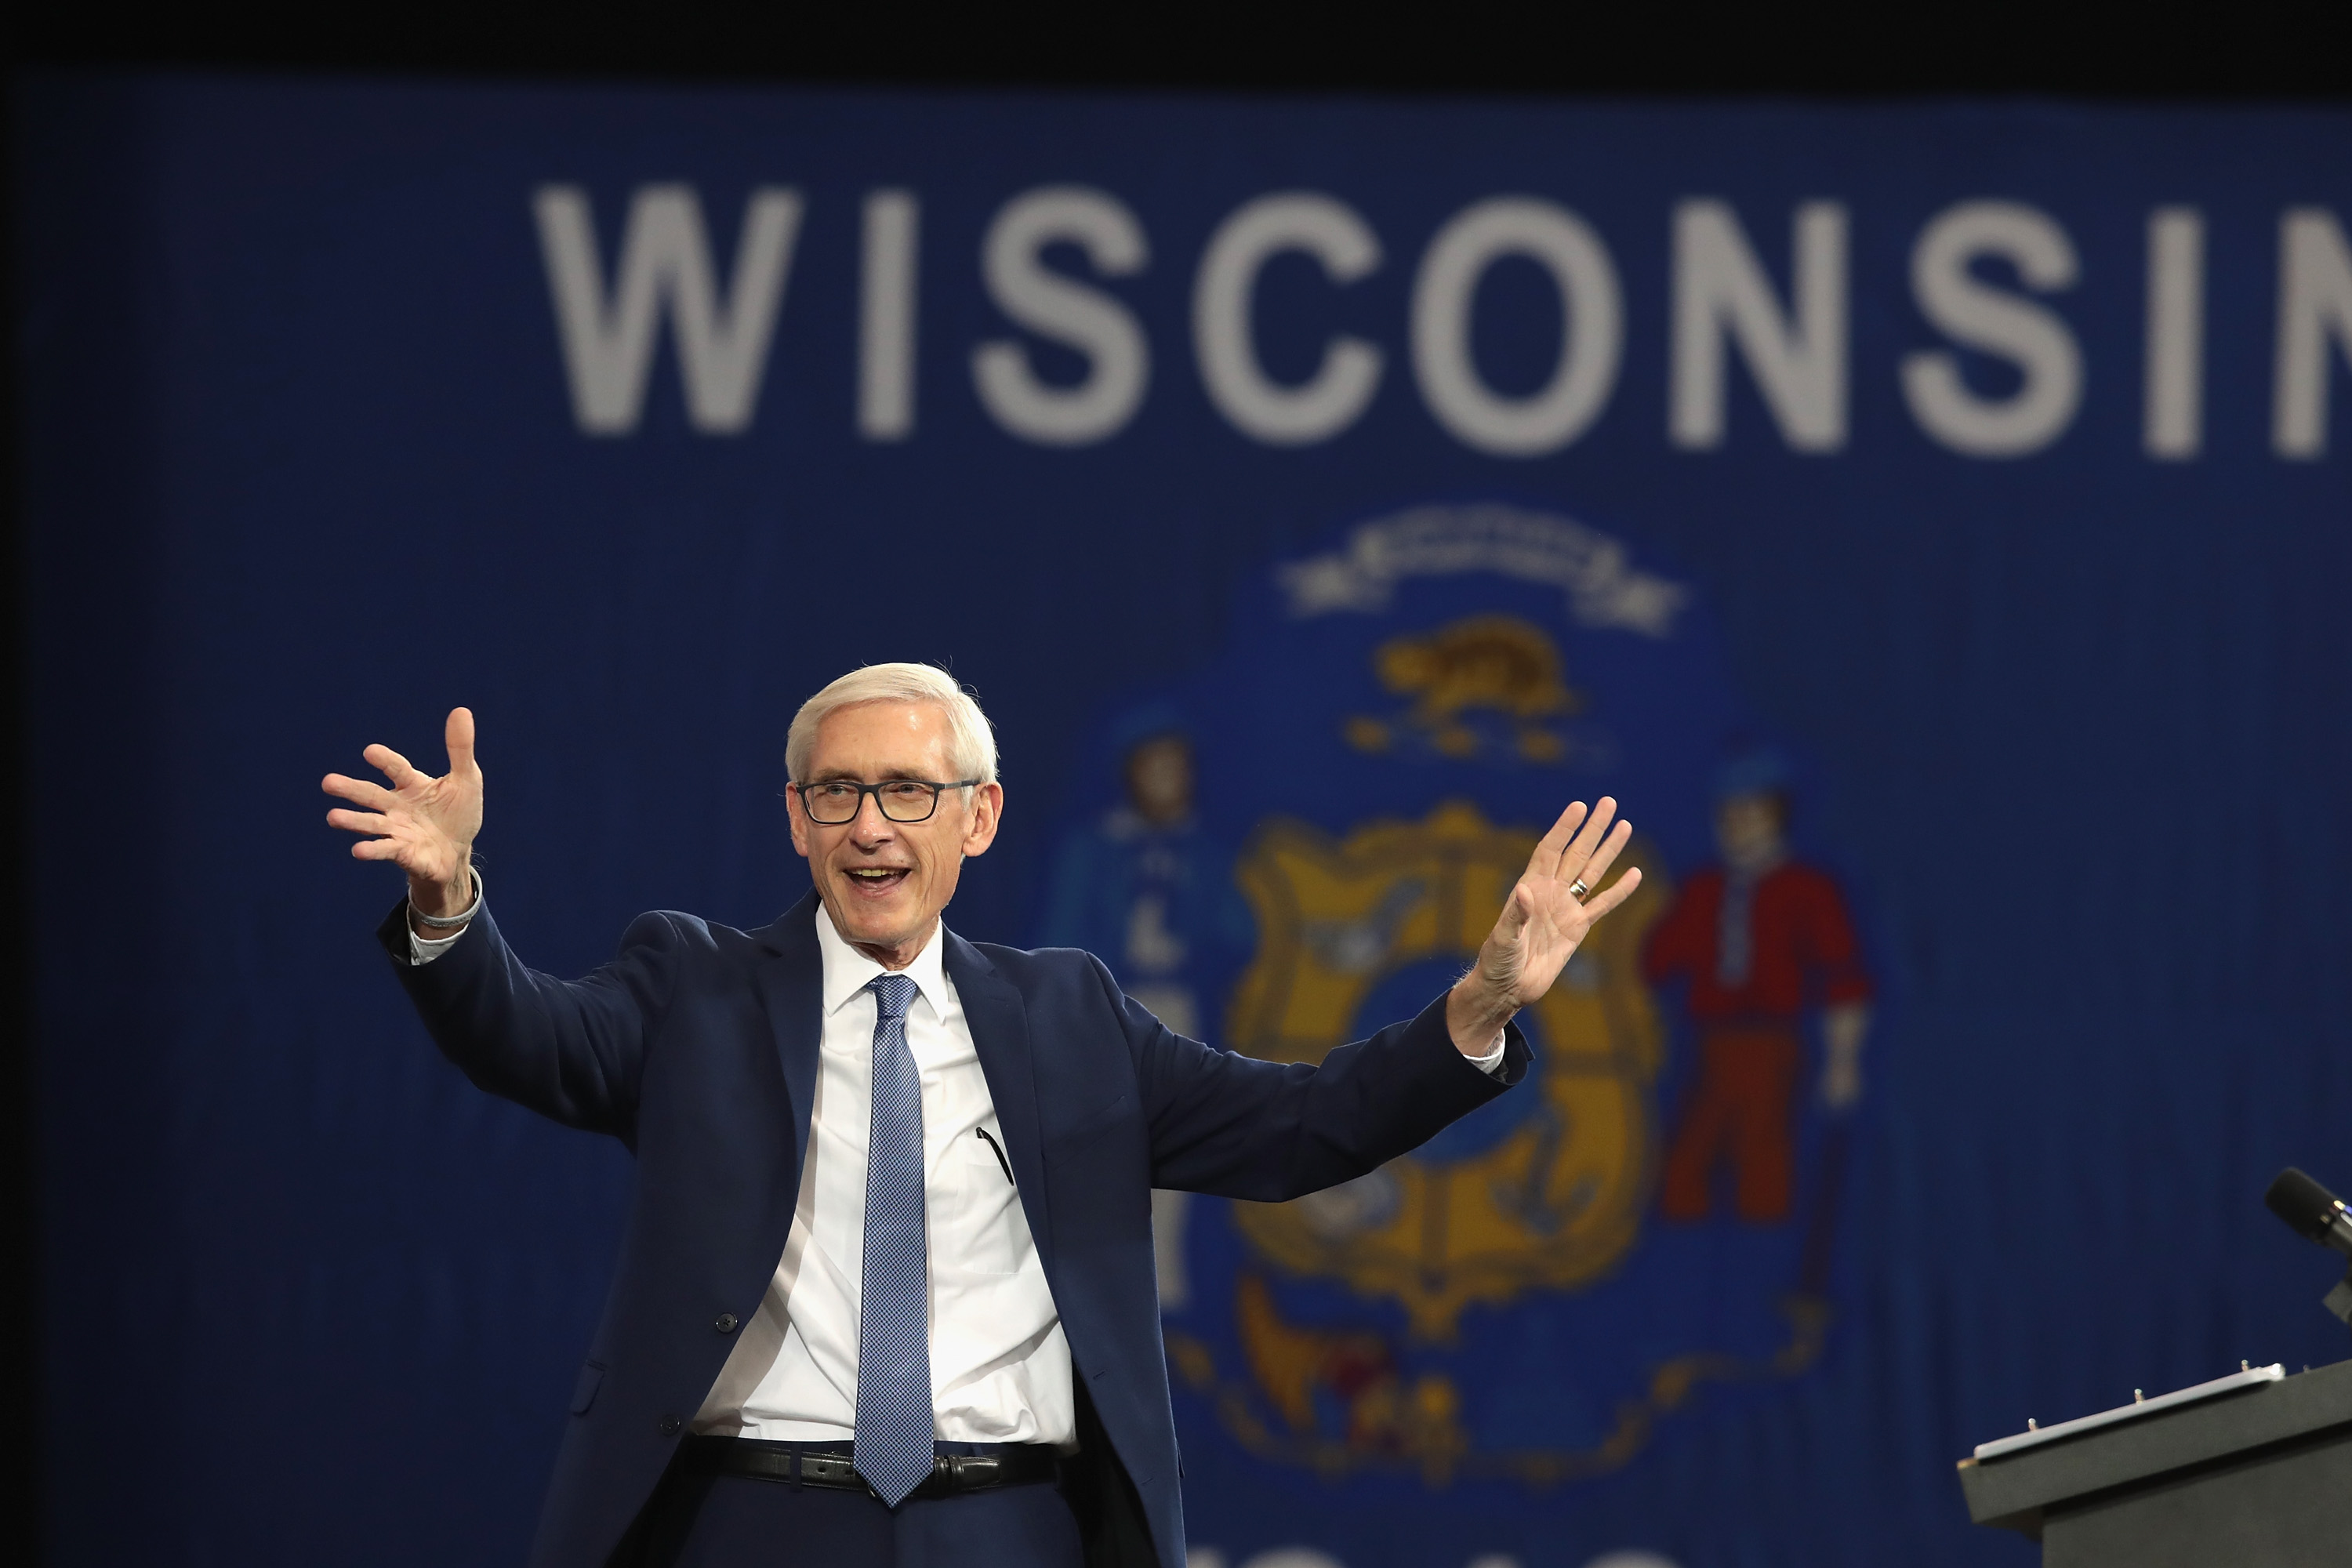 Tony Evers, Democratic candidate for governor of Wisconsin, speaks at a rally in support of Wisconsin Democrats at North Division High School on October 26, 2018 in Milwaukee, Wisconsin. (Photo by Scott Olson/Getty Images)